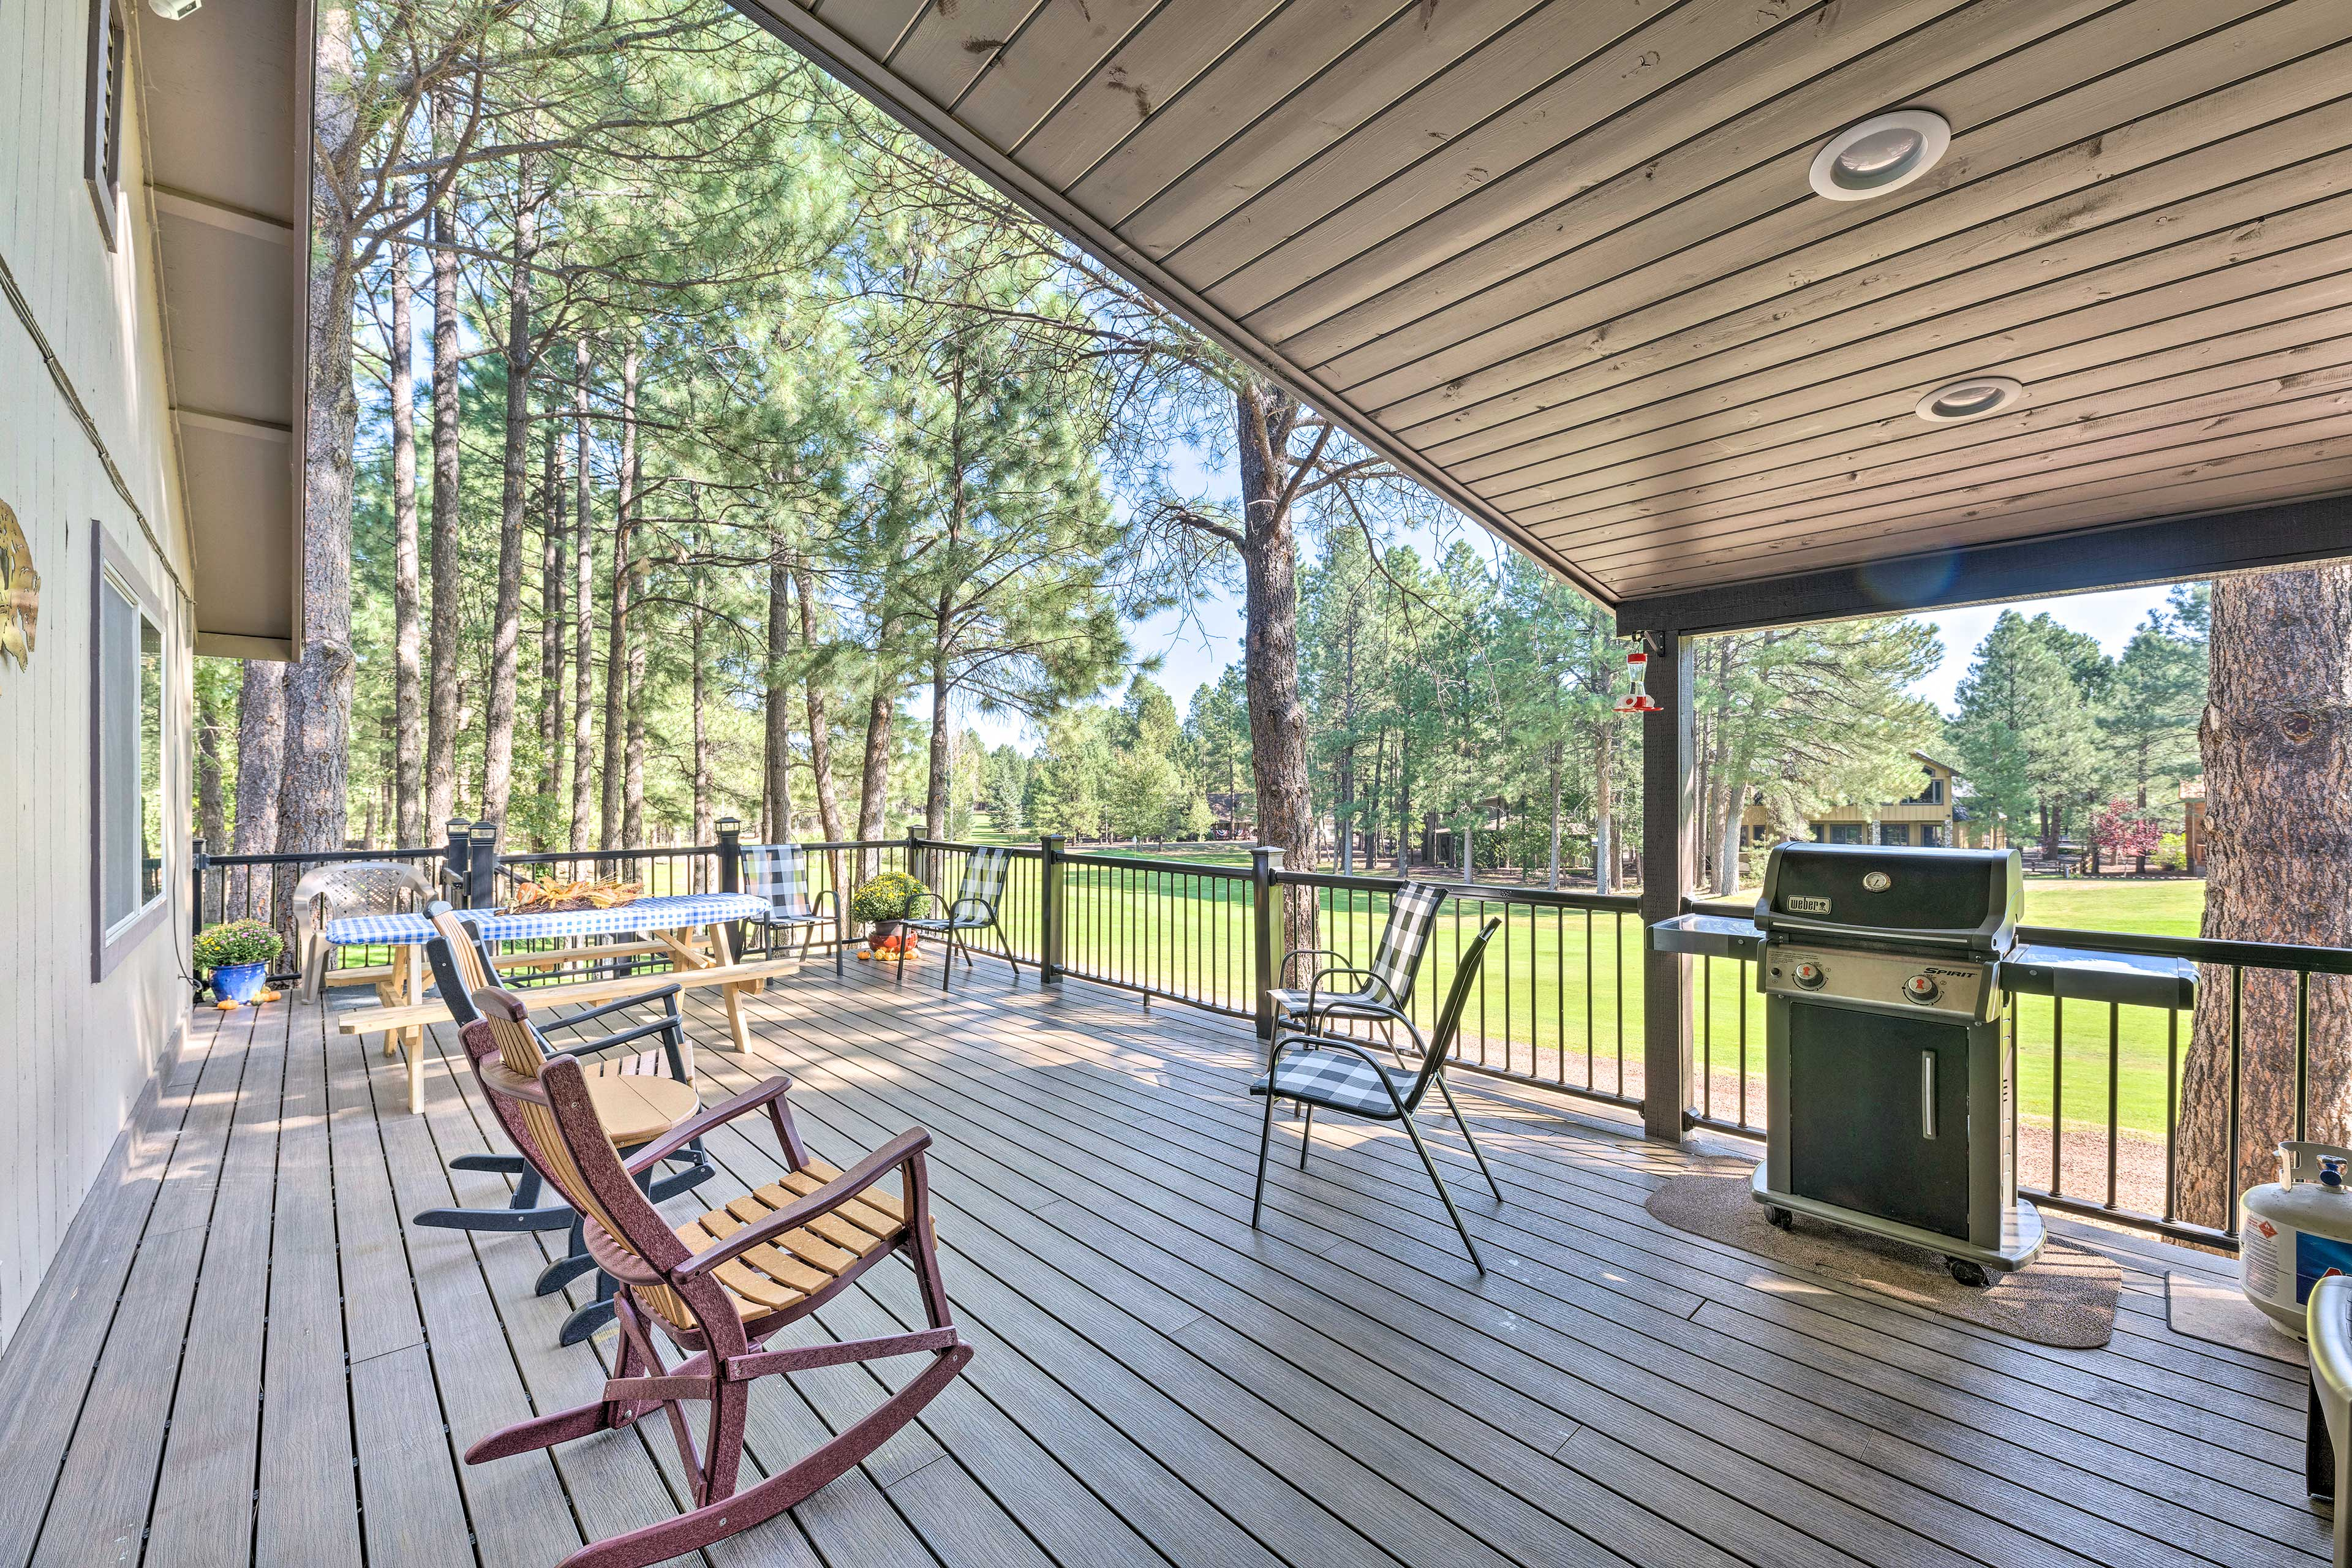 Golf course views can be yours at this 4-bed, 3-bath vacation rental home!